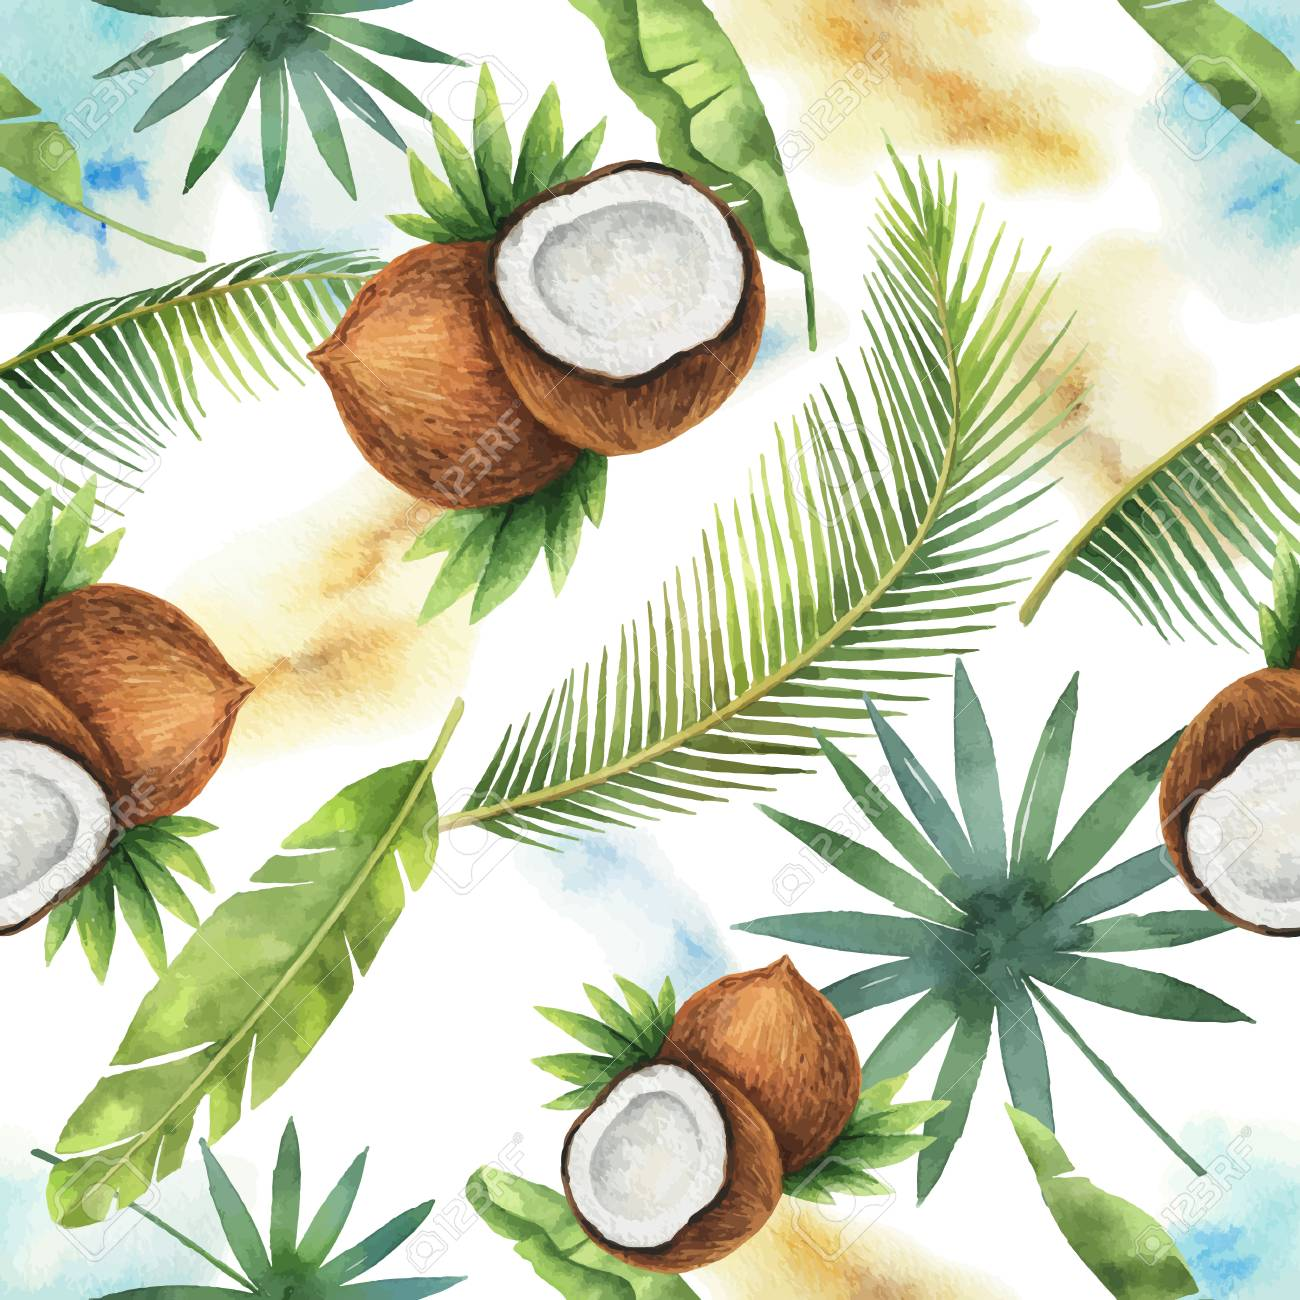 Watercolor vector seamless pattern of coconut and palm trees isolated on white background. - 102619089